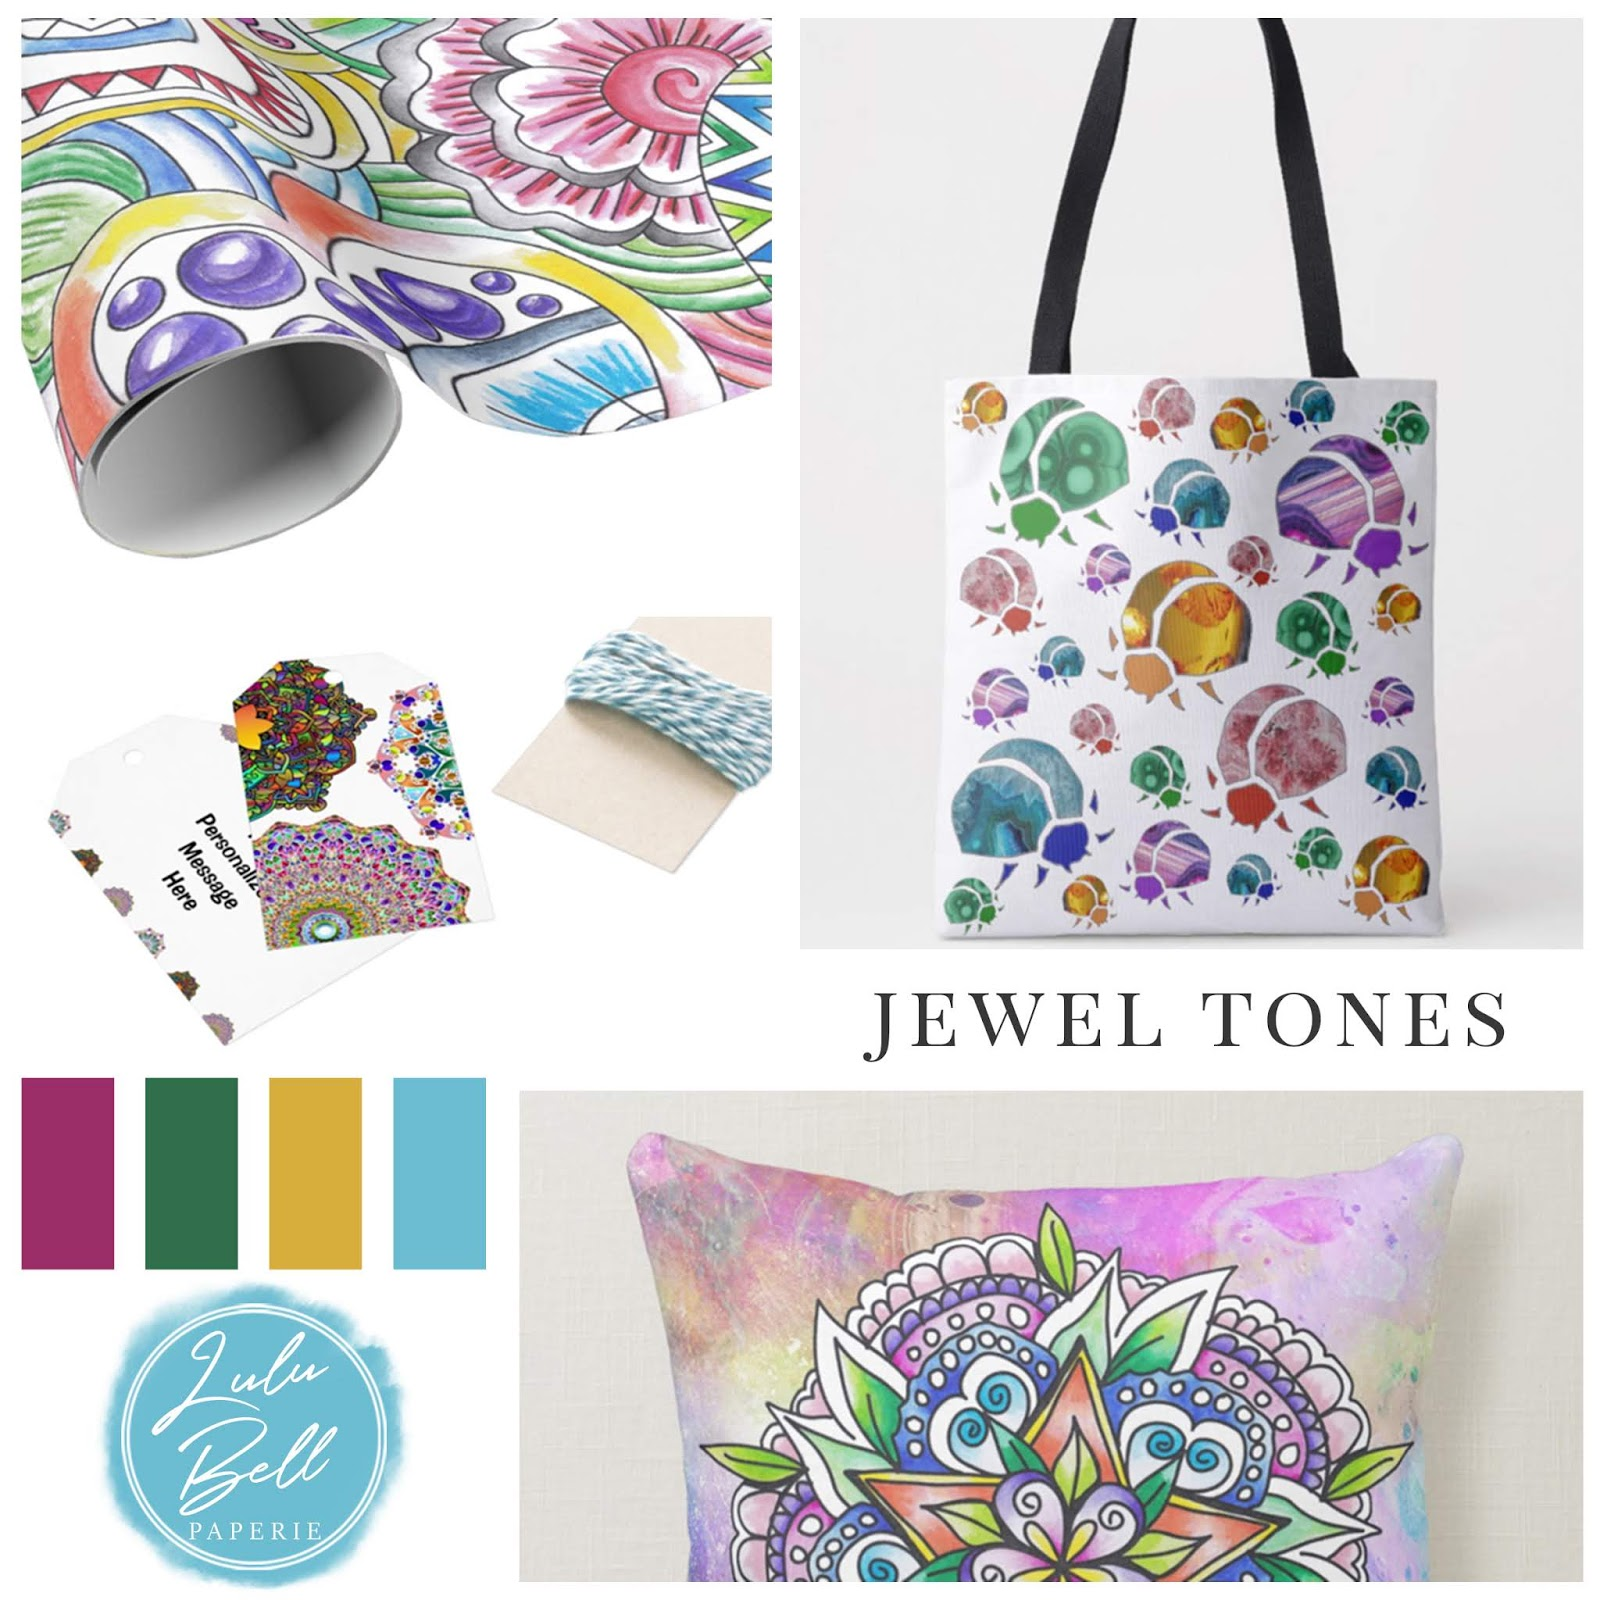 Bohemian Rainbow Home & Gifts Collection - Custom Gift Wrap Paper, Jewel Beetle Tote Bag, Personalized Gift Tags, and Mandala Throw Pillow